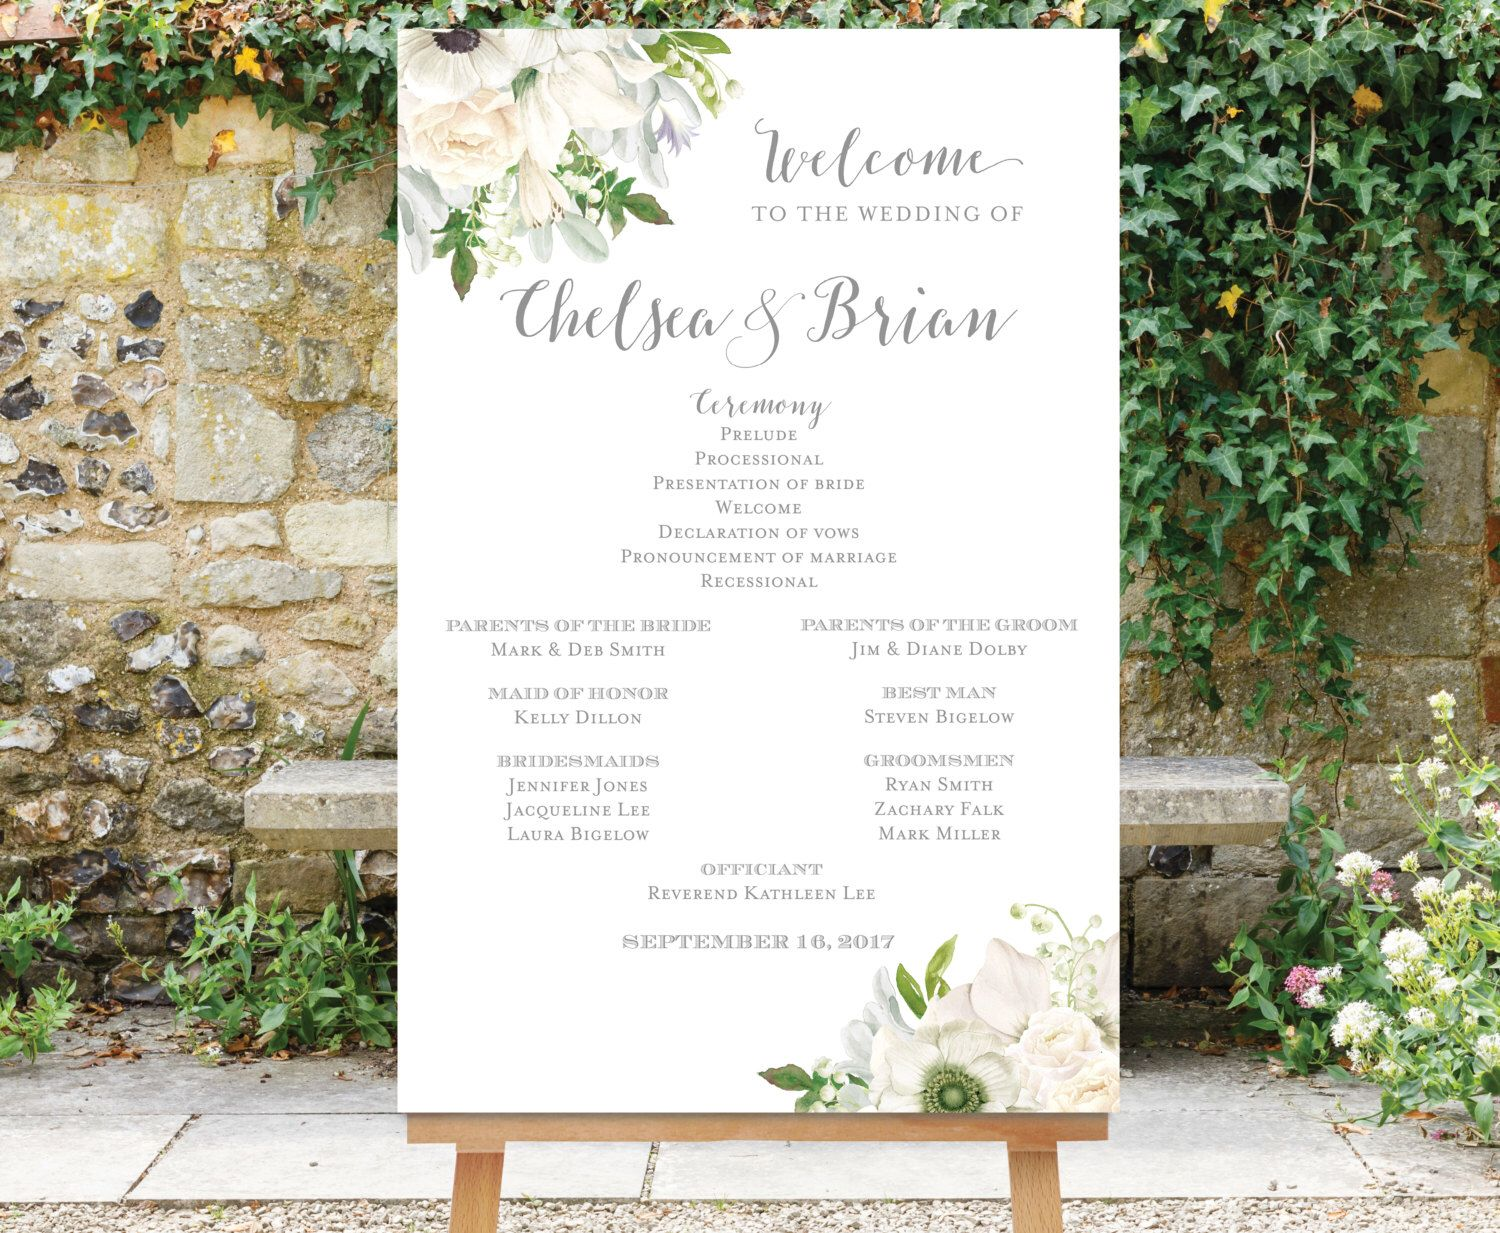 Wedding Program And Party Sign White Flowers Wedding Program Large Program Sign Printable Large Wedding Program Sign Wedding Welcome Signs Wedding Programs